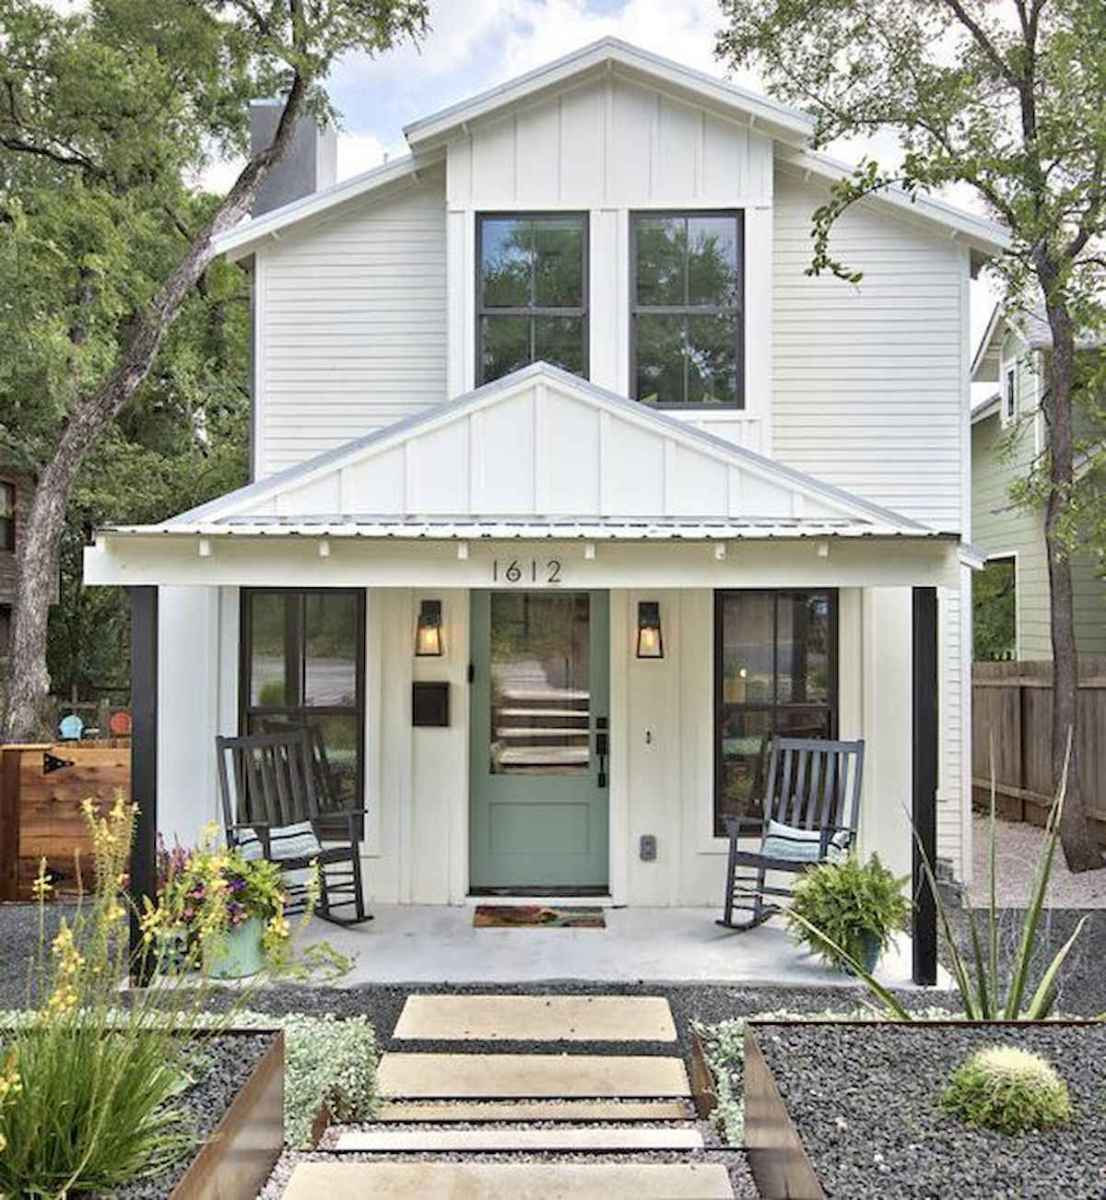 60 Beautiful Tiny House Plans Small Cottages Design Ideas (27)